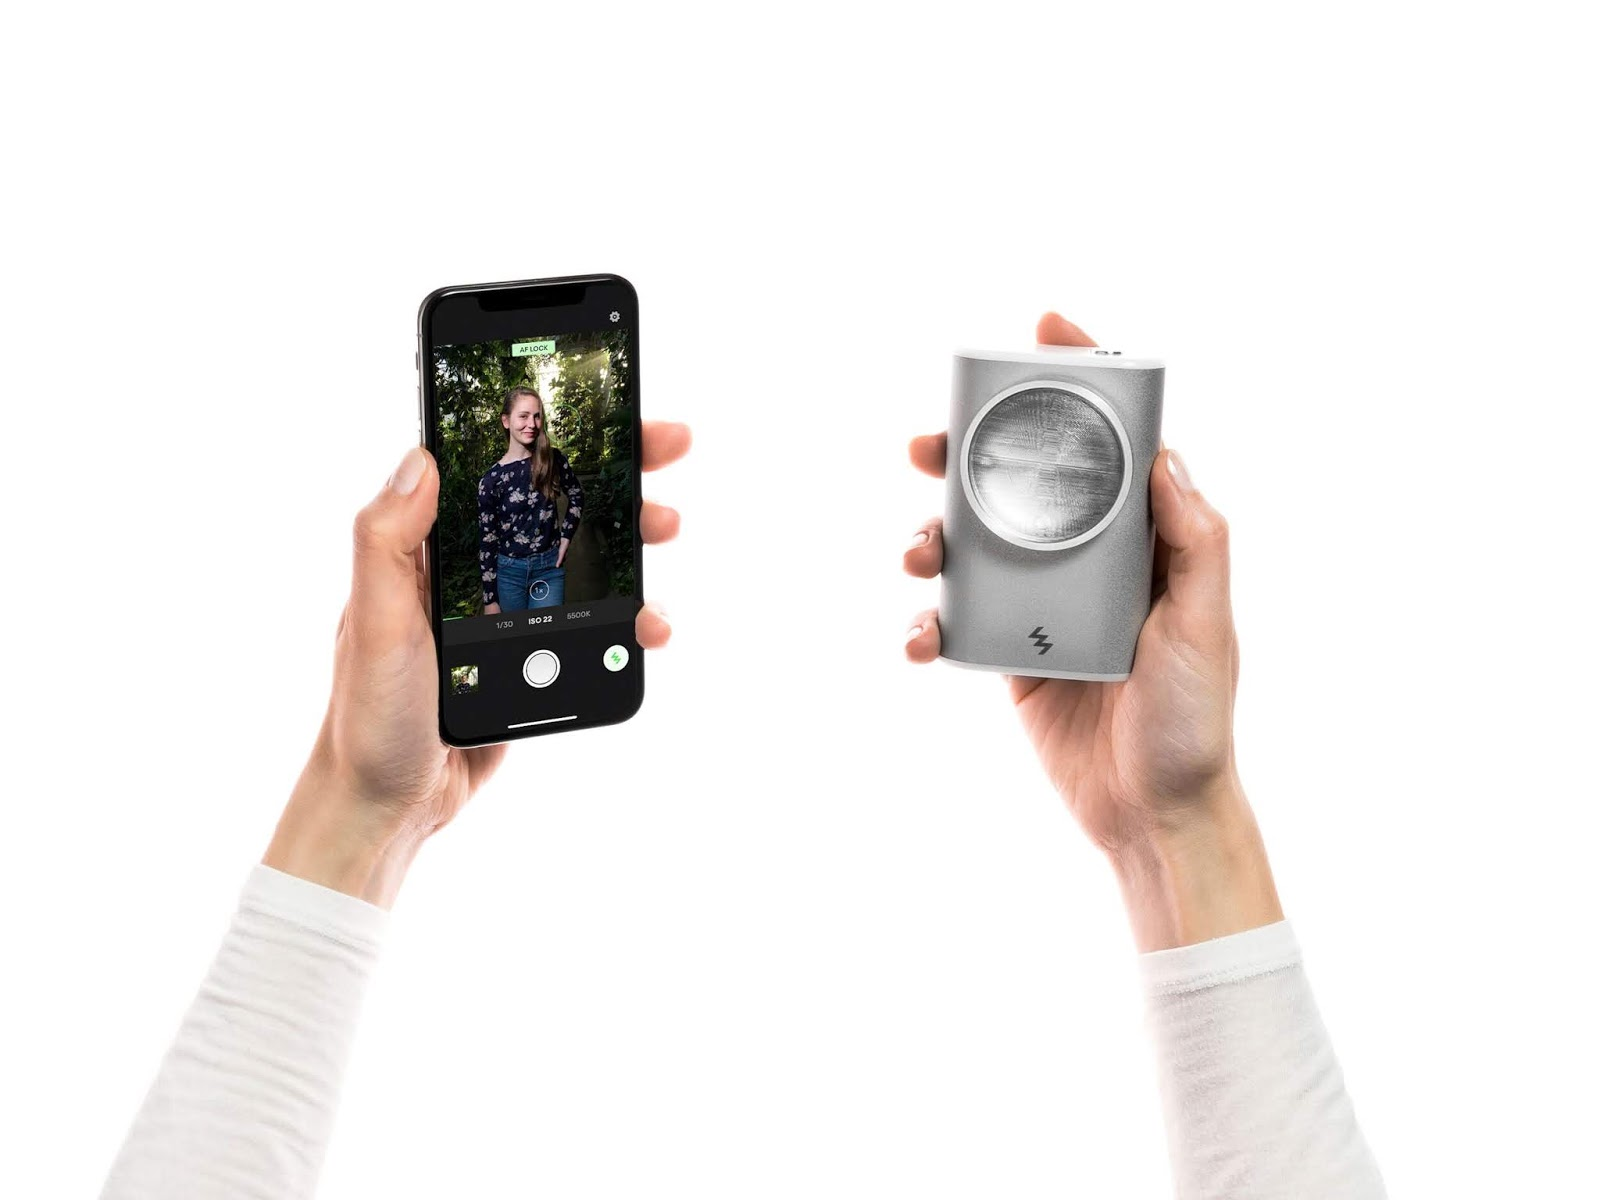 LIT Reinvents Mobile Photography with Handheld Wireless Xenon Flash